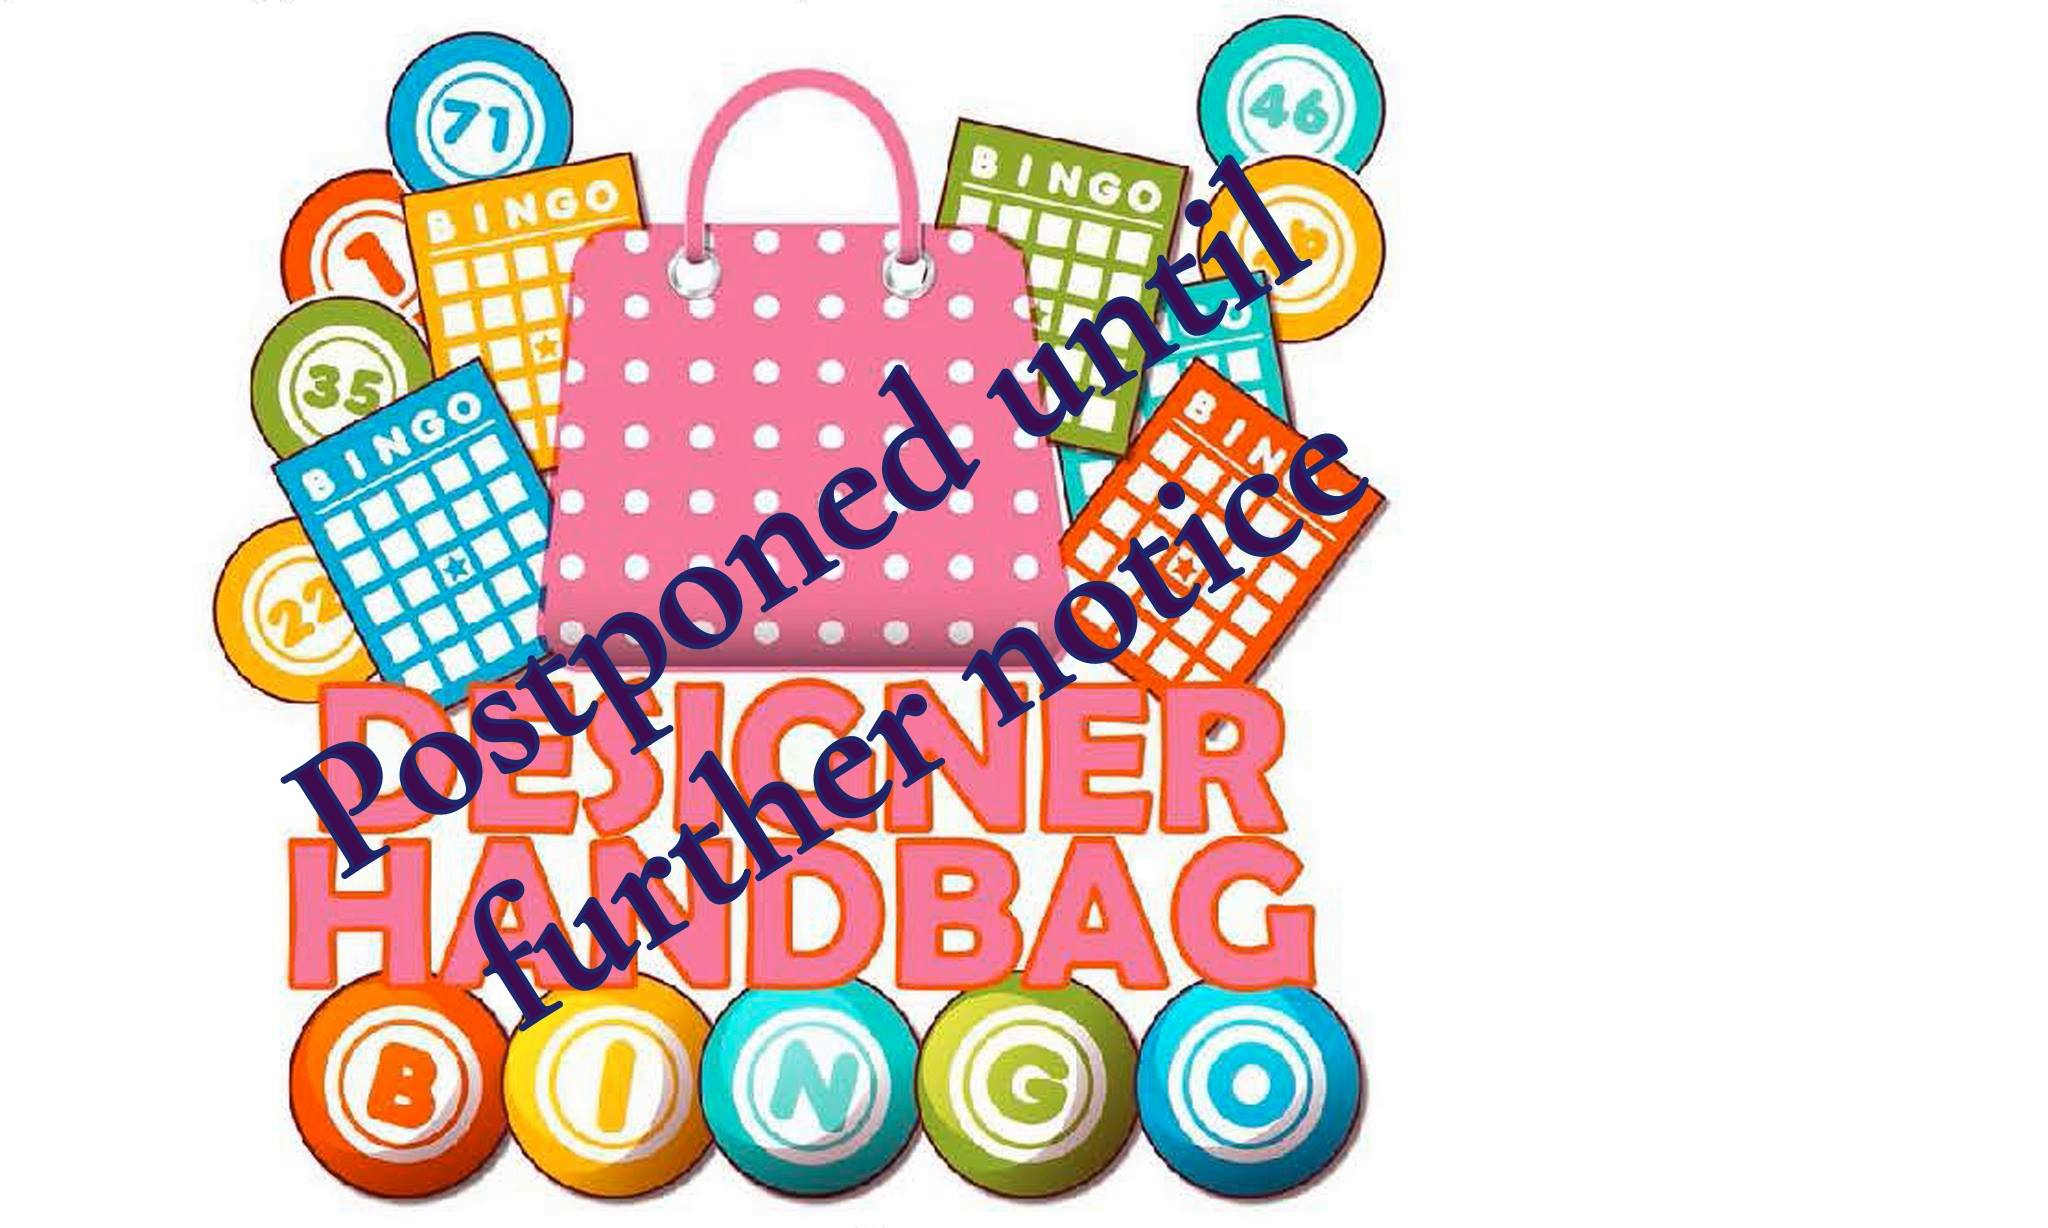 rescheduled bingo designer handbag rescheduled bingo designer handbag